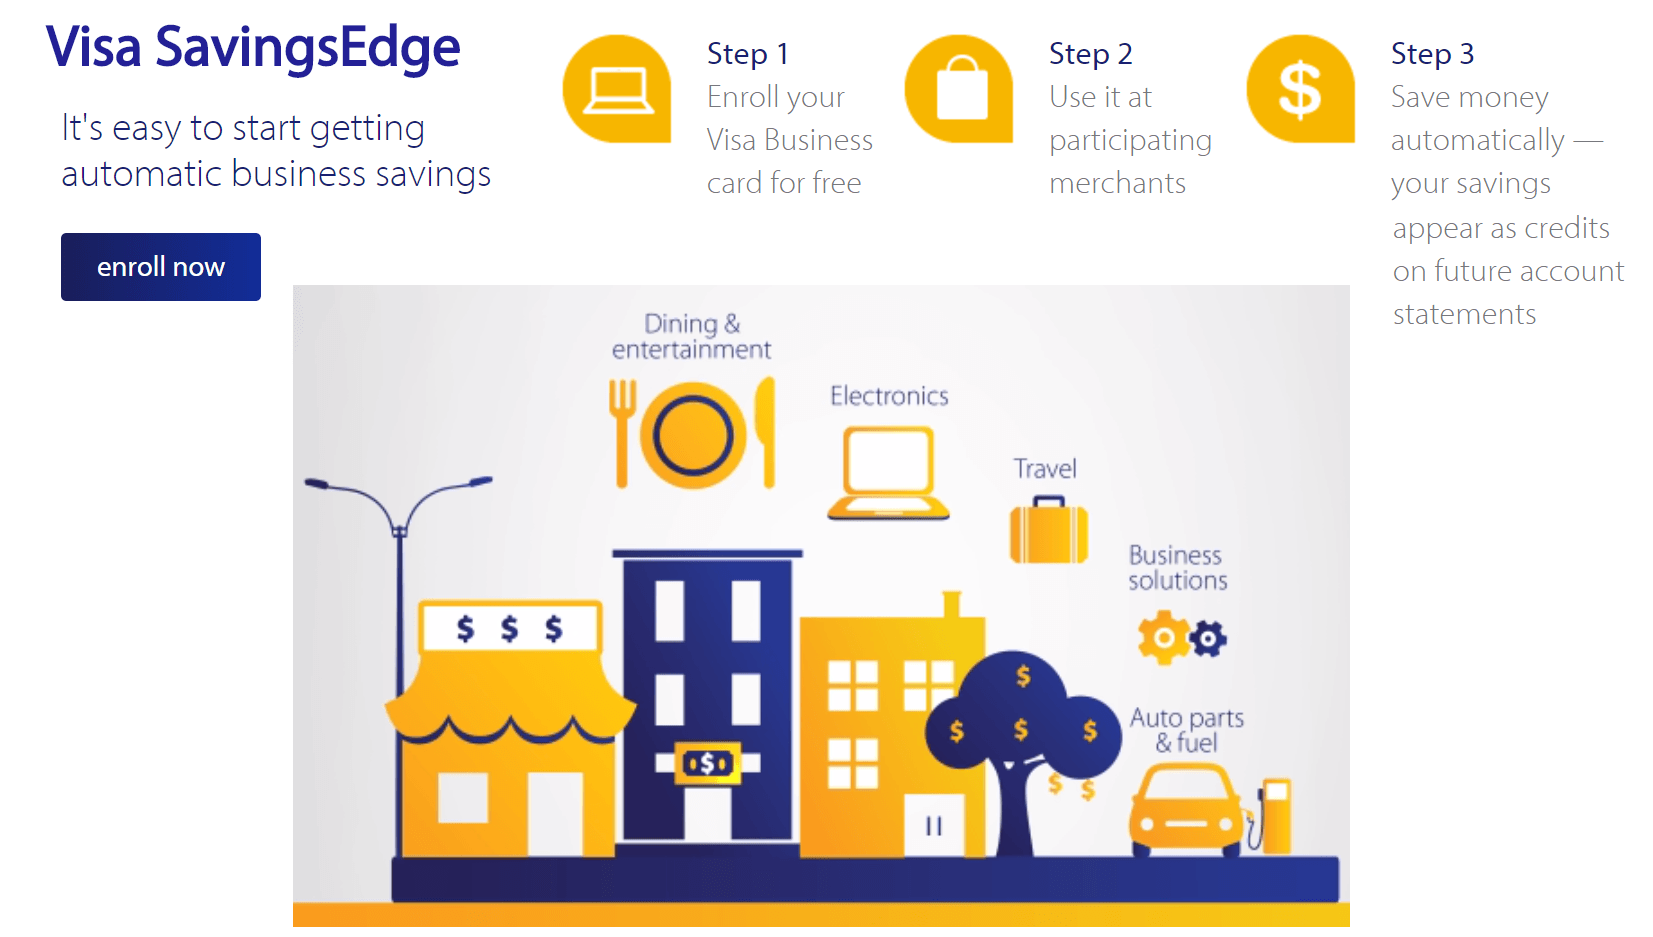 Visa Savings Edge Review: Enroll Visa Business Cards